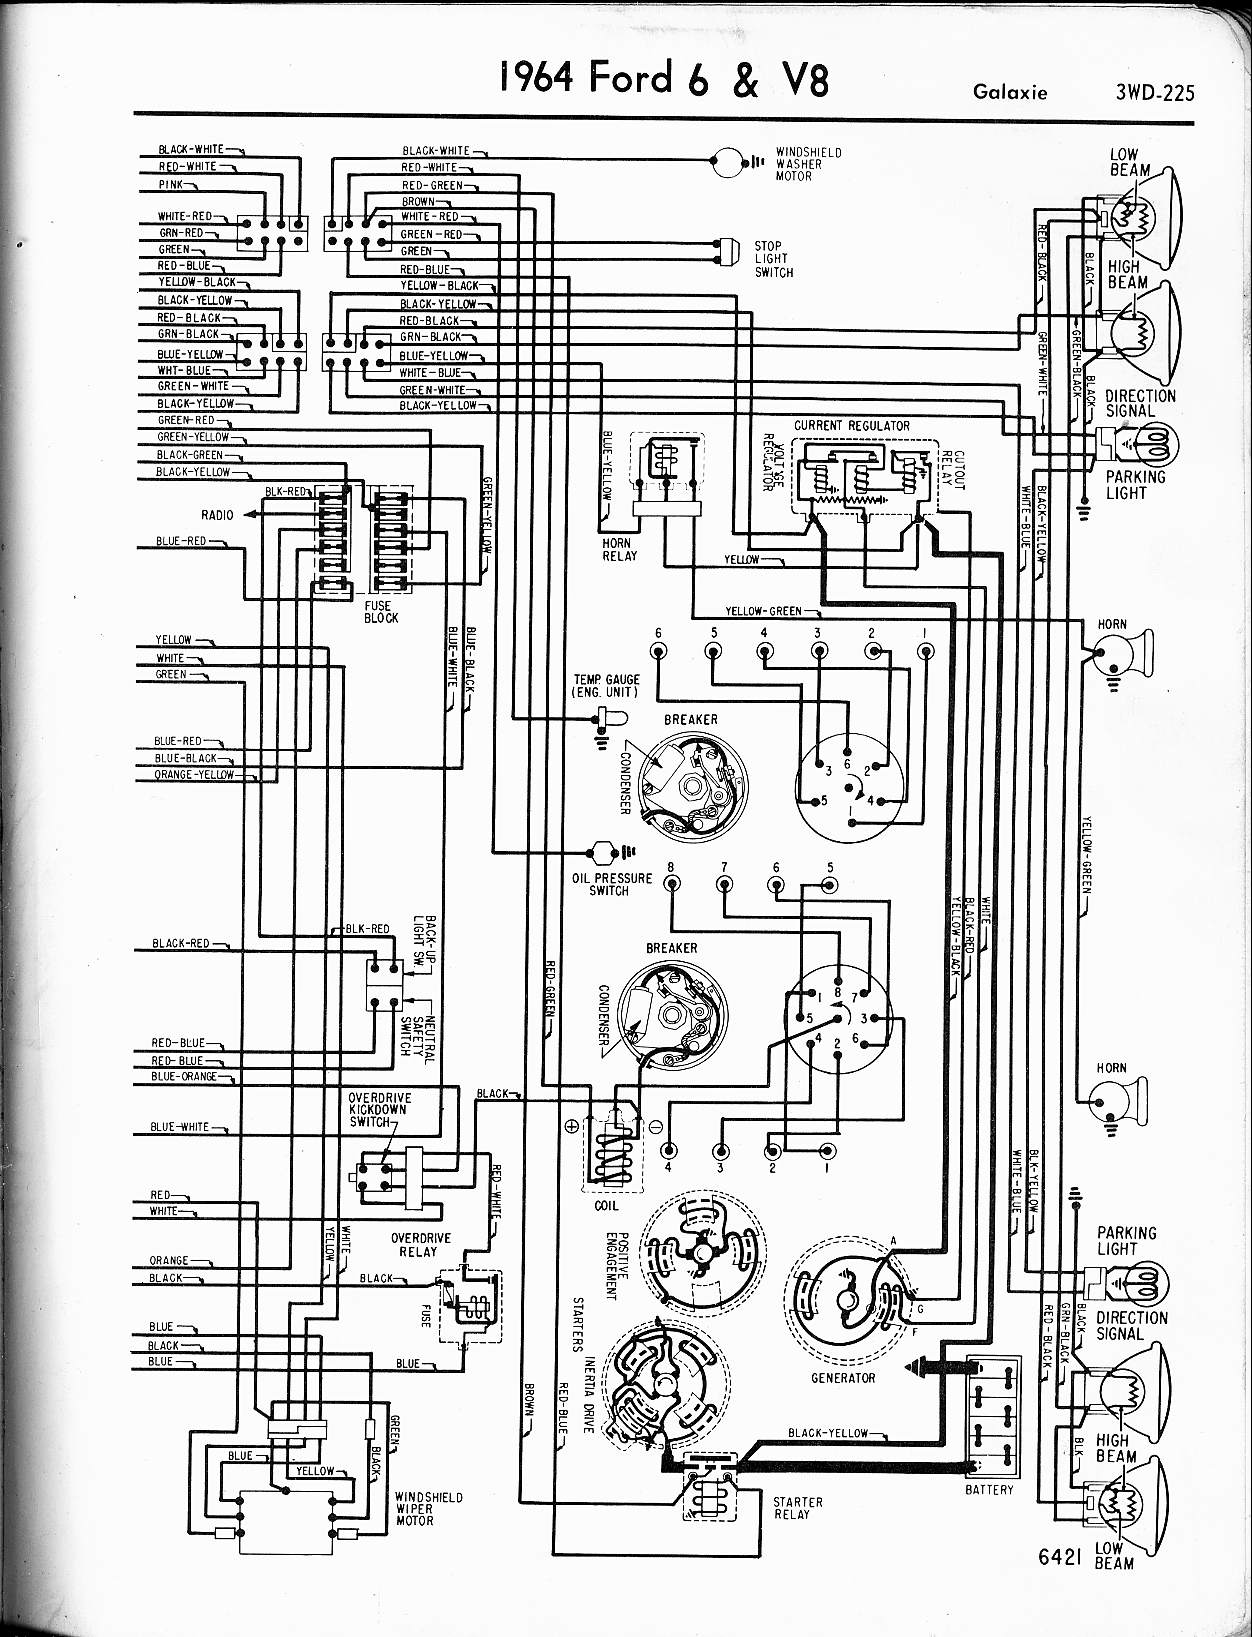 Automotive Schematics Fuse Box Wiring Diagram 1964 Ford Falcon Auto 57 65 Diagrams Rh Oldcarmanualproject Com